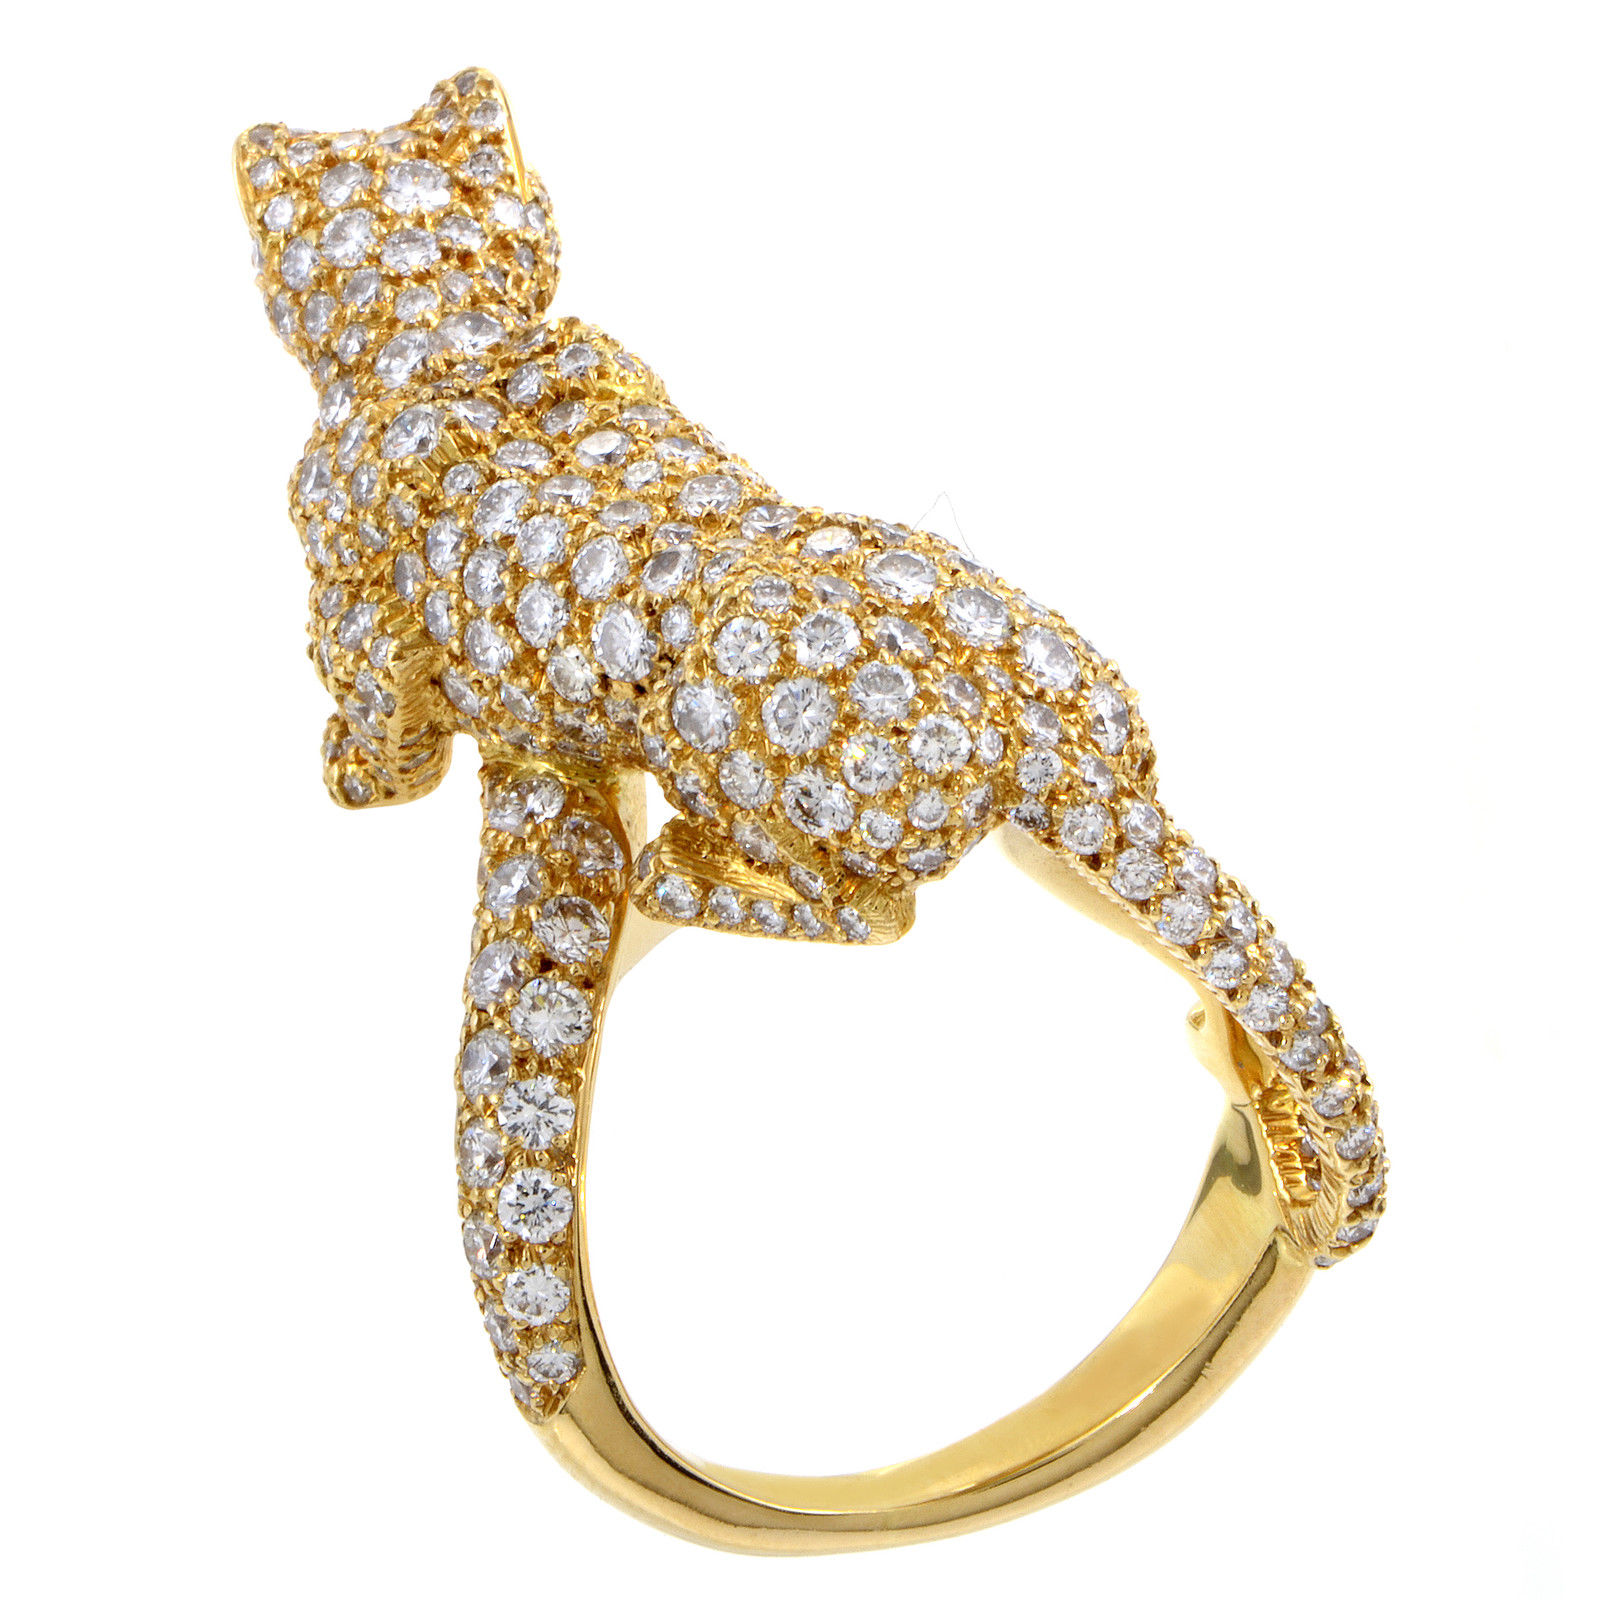 Cartier Panthere Women's 18K Yellow Gold Full Diamond Pave Ring